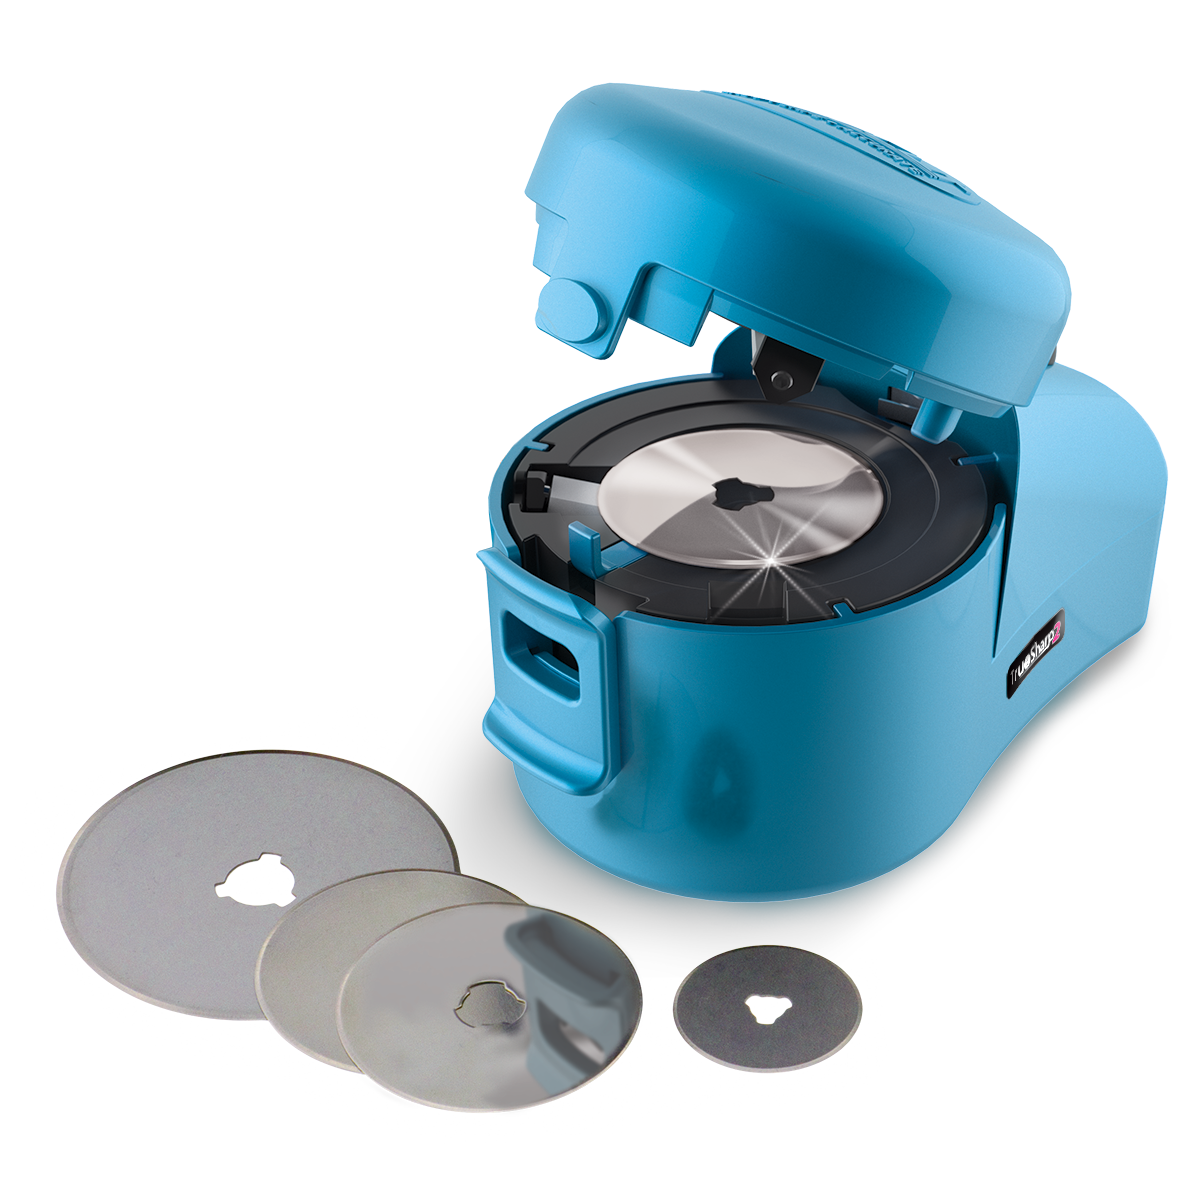 Electric Power Rotary Blade Sharpener